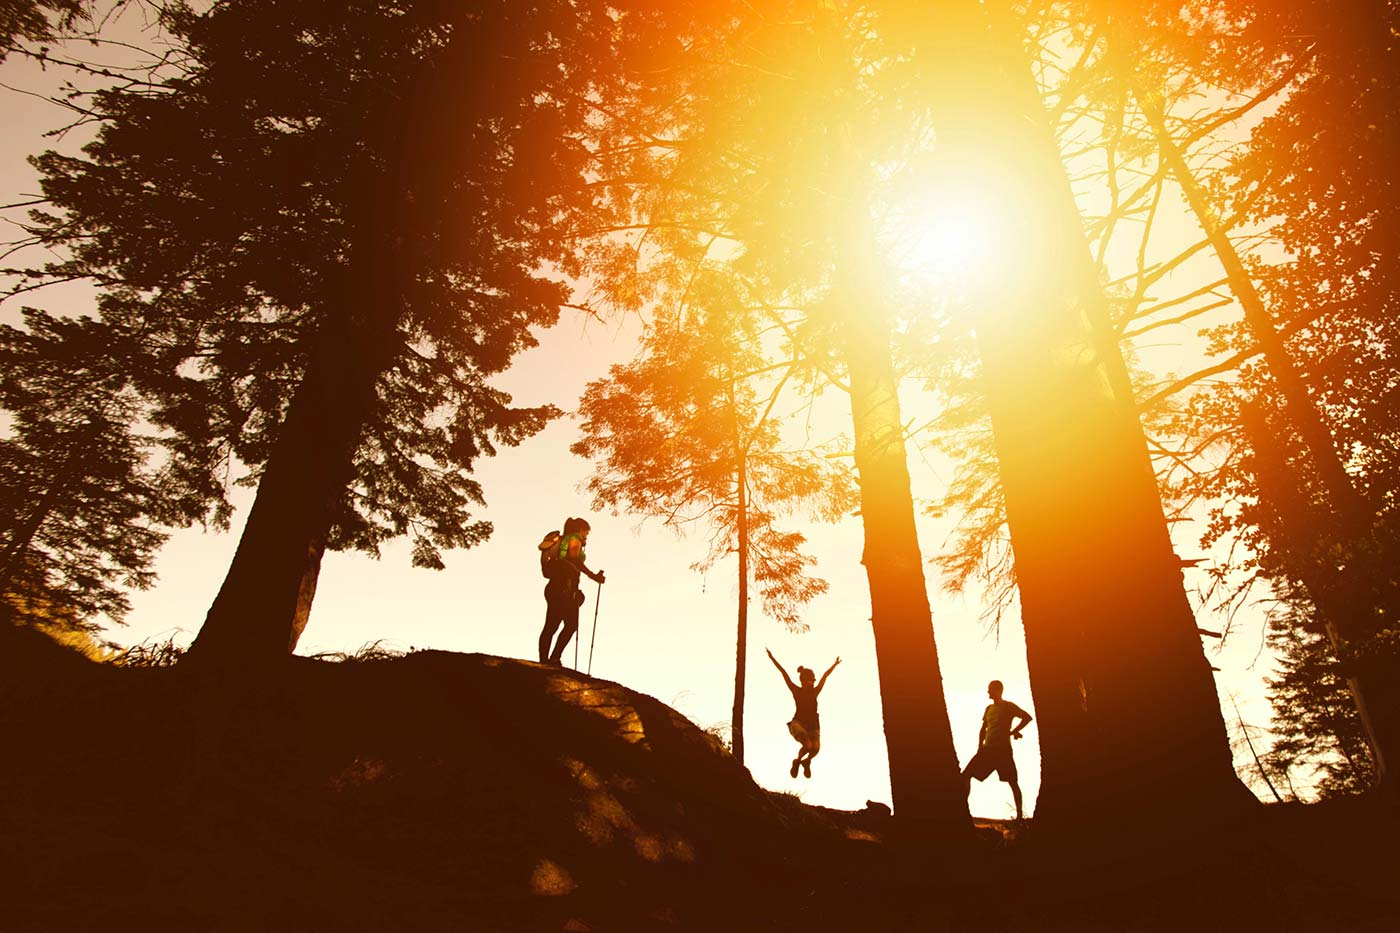 A few friends hiking on a hill with the golden sun behind them. One is jumping in joy.